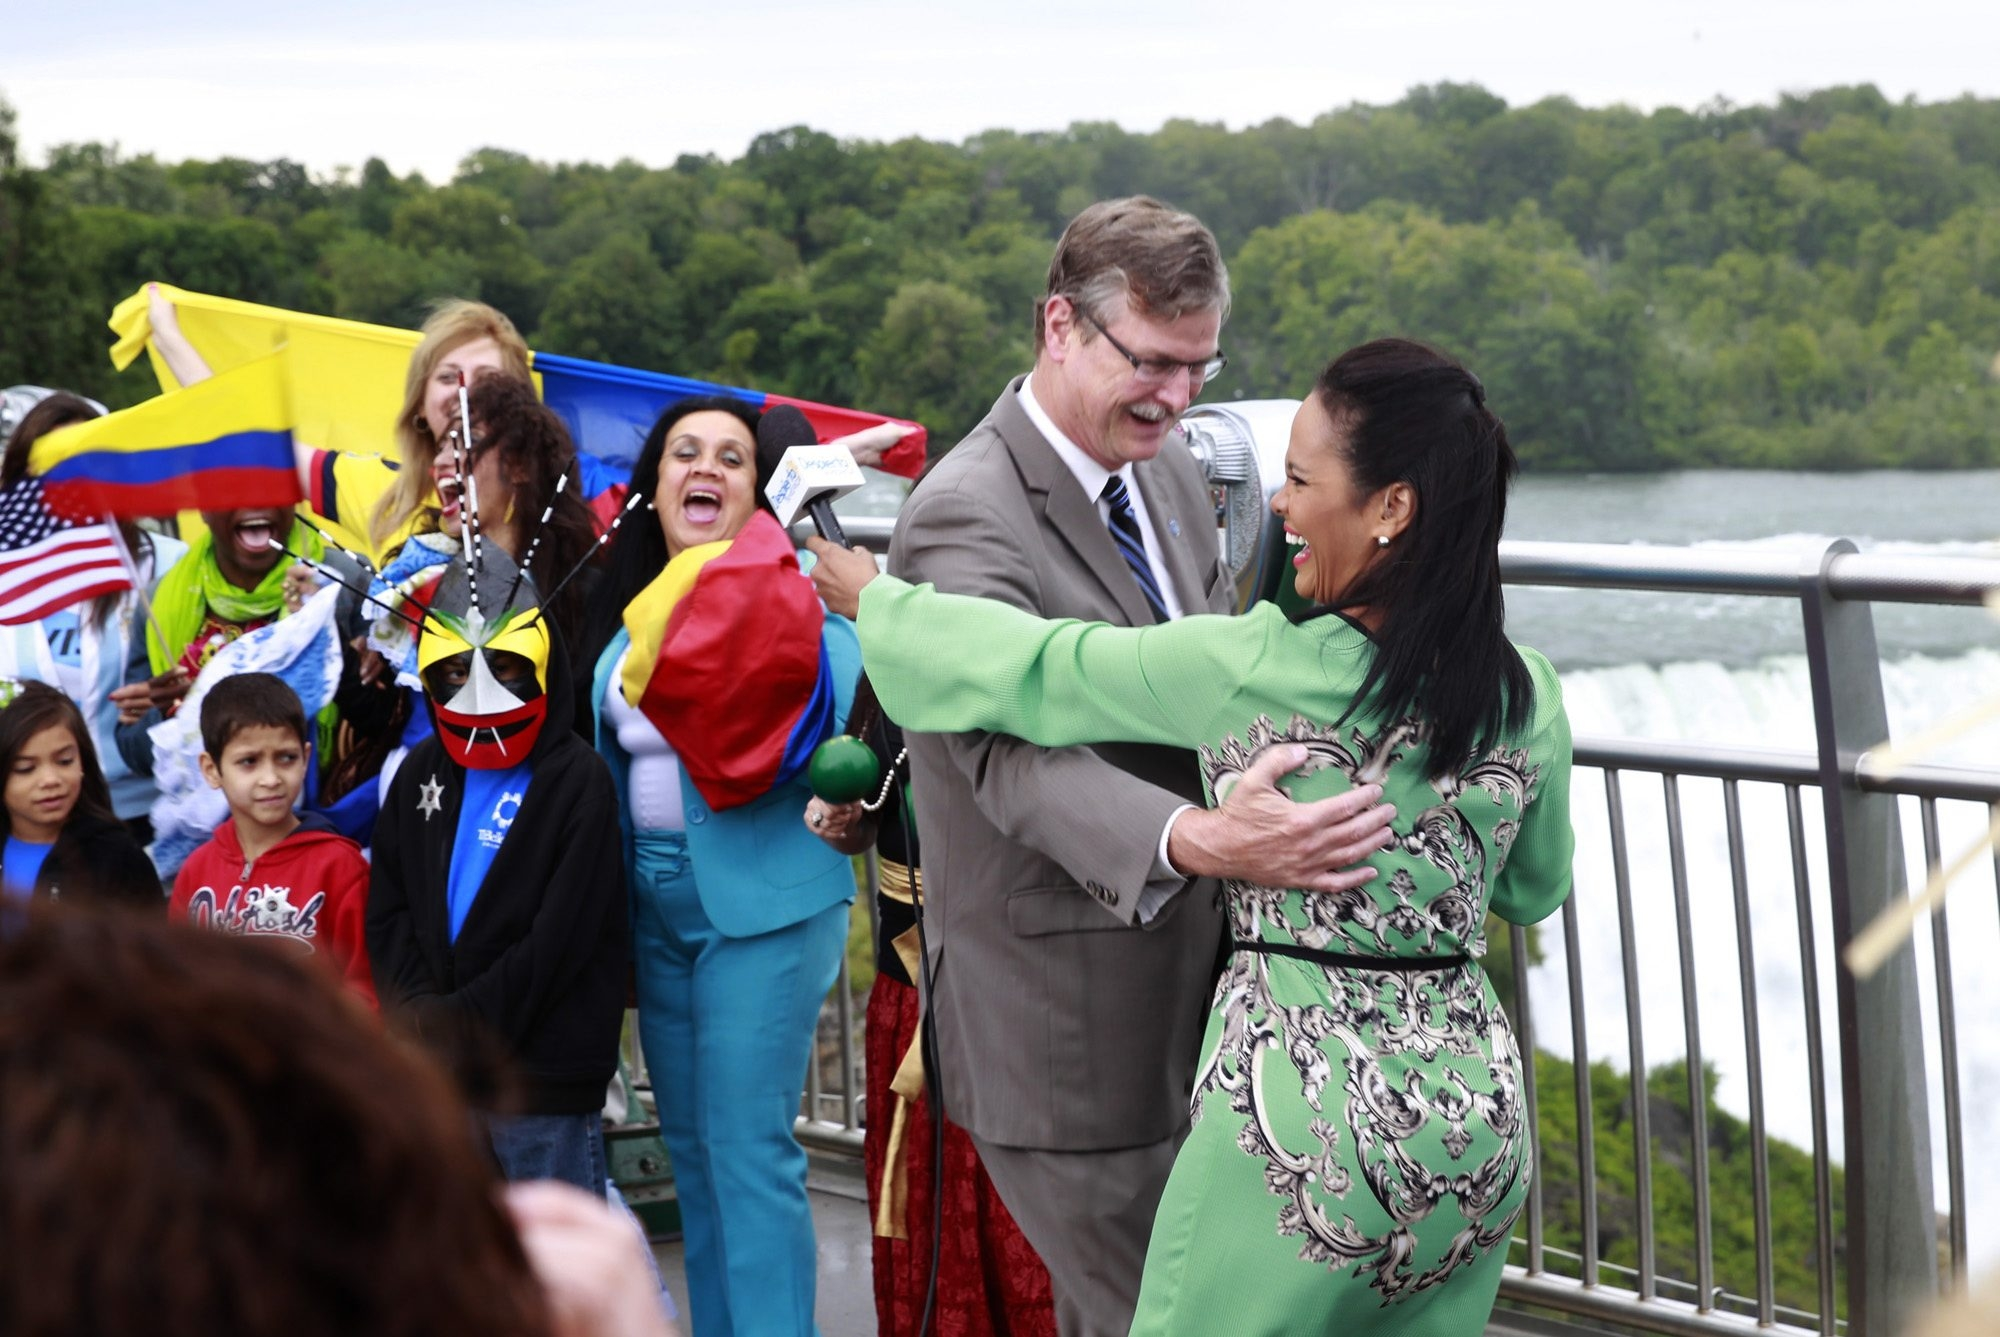 Niagara Falls Mayor Paul Dyster dances with the host of  Univiision Network's international morning show, 'Despierta America Live,' Birmania Rios as they  telecast  segments from the observation deck at Prospect Point in Niagara Falls, NY on Friday, Aug. 15, 2014.  (John Hickey/Buffalo News)